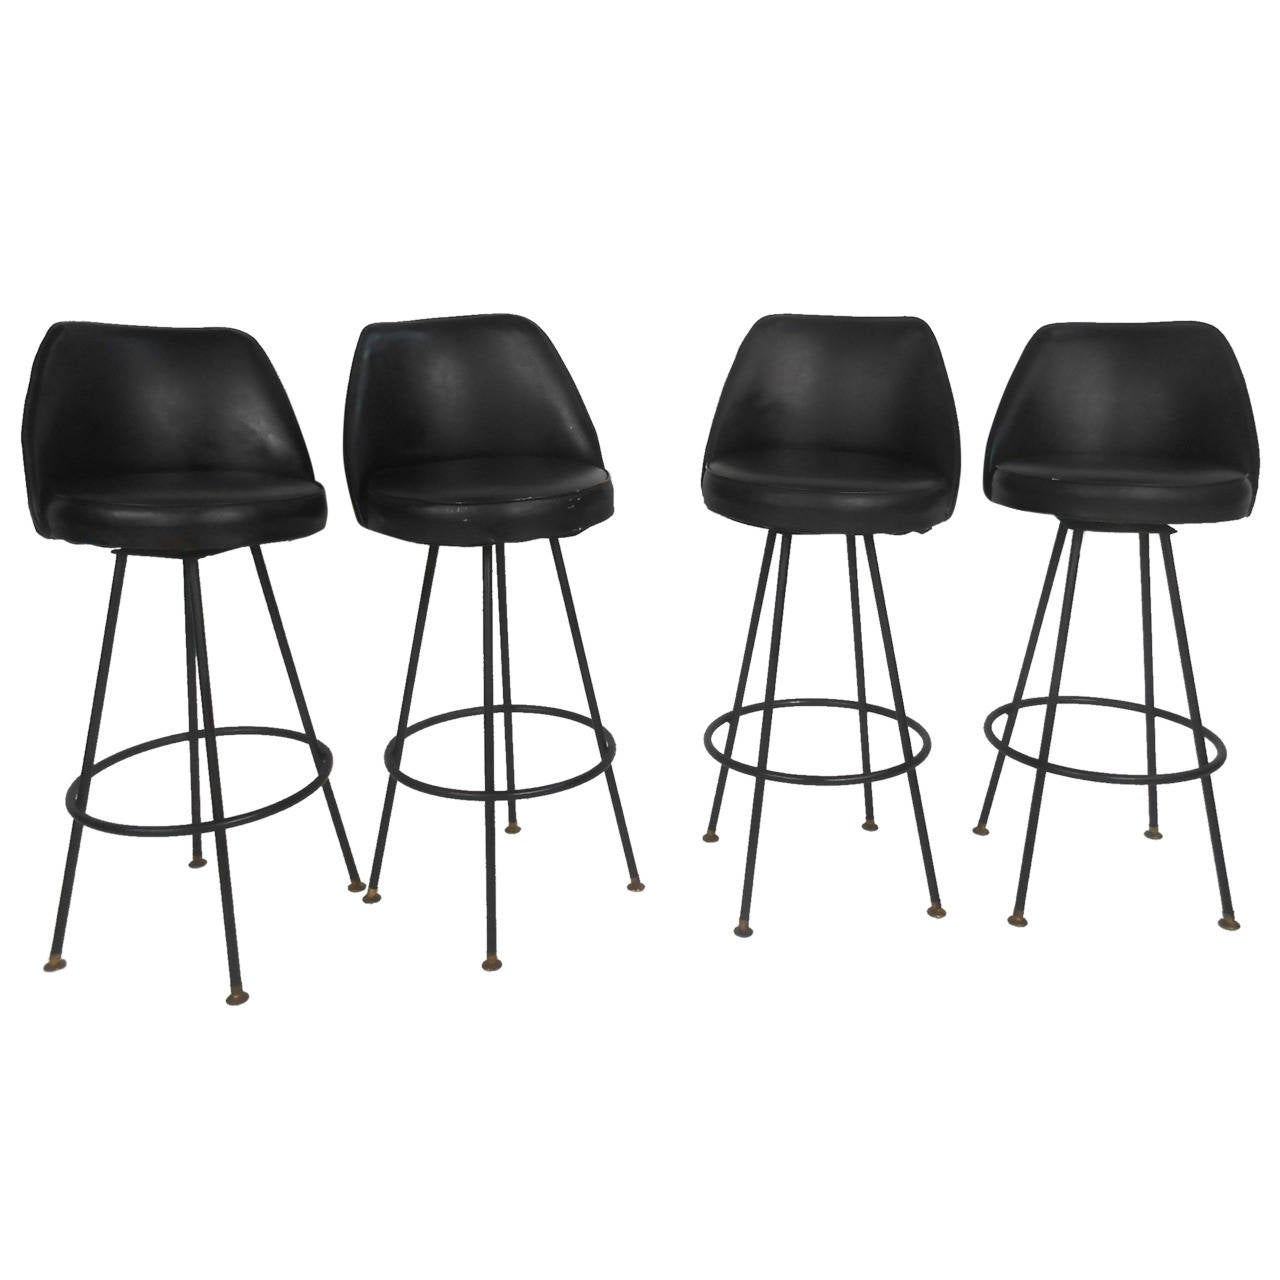 Contemporary Bar Stools ~ Four mid century modern bar stools by admiral chrome